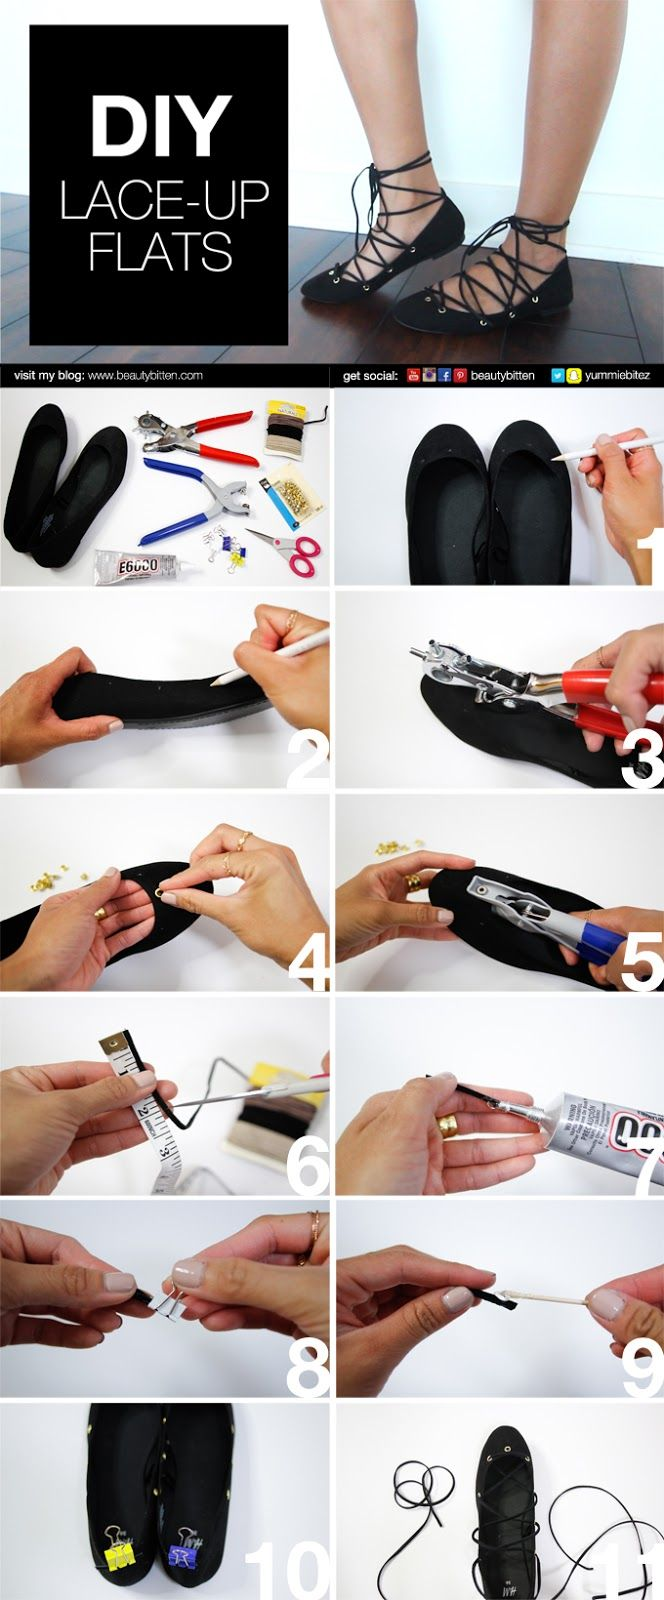 #DIY Lace-up Flats Picture-by-Picture instructions. How you can update your plain, old ballerina flats. No sewing involved. Please visit my blog or Youtube channel for DIY video (https://youtu.be/jQZYVg6SiJ0) and ideas how you can tie your flats.